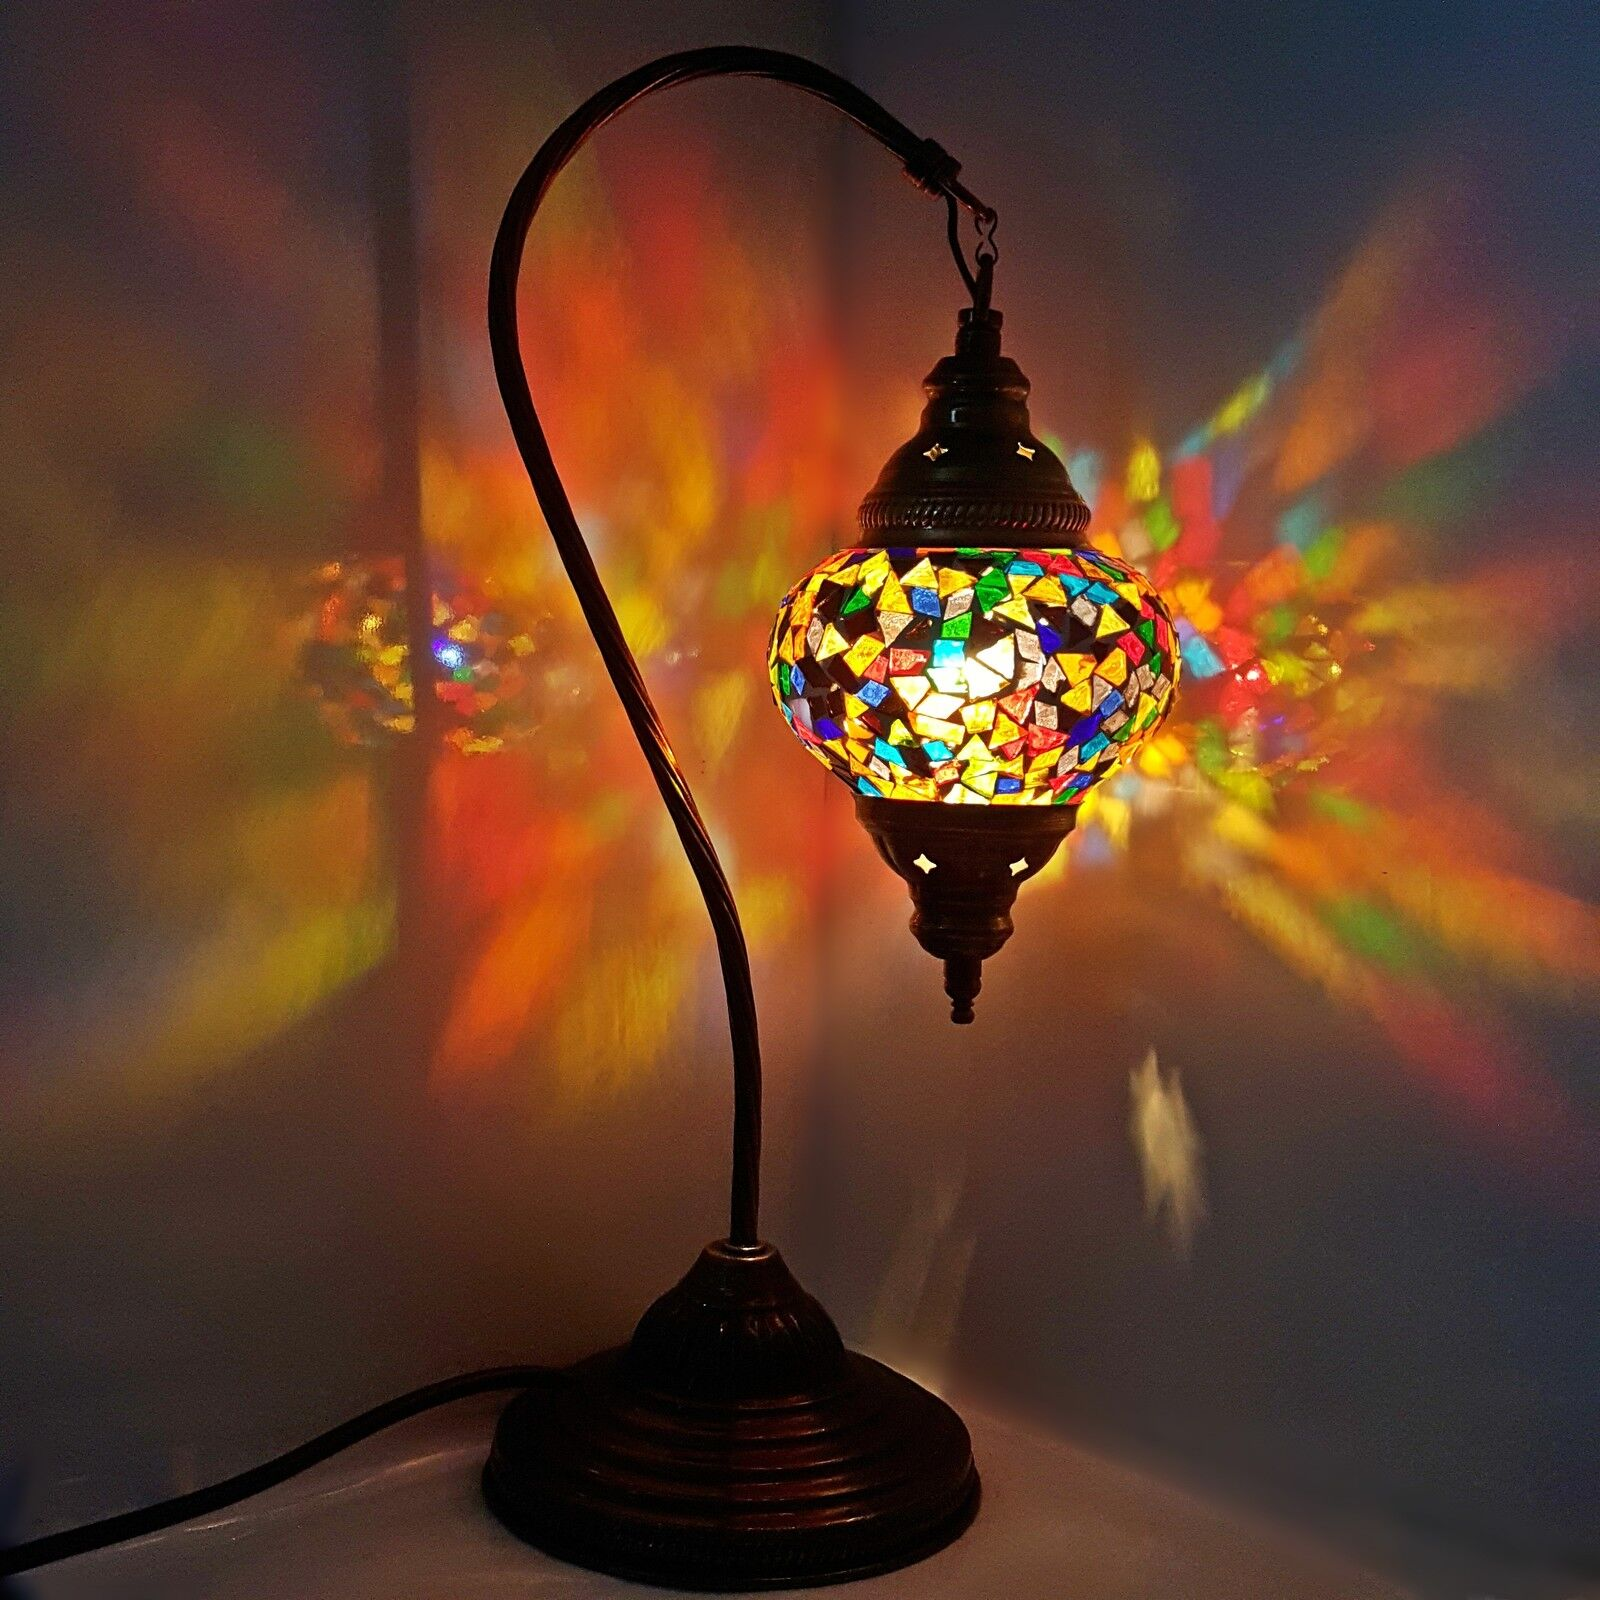 turkish marokkanische bunt lampen licht tiffany glas. Black Bedroom Furniture Sets. Home Design Ideas